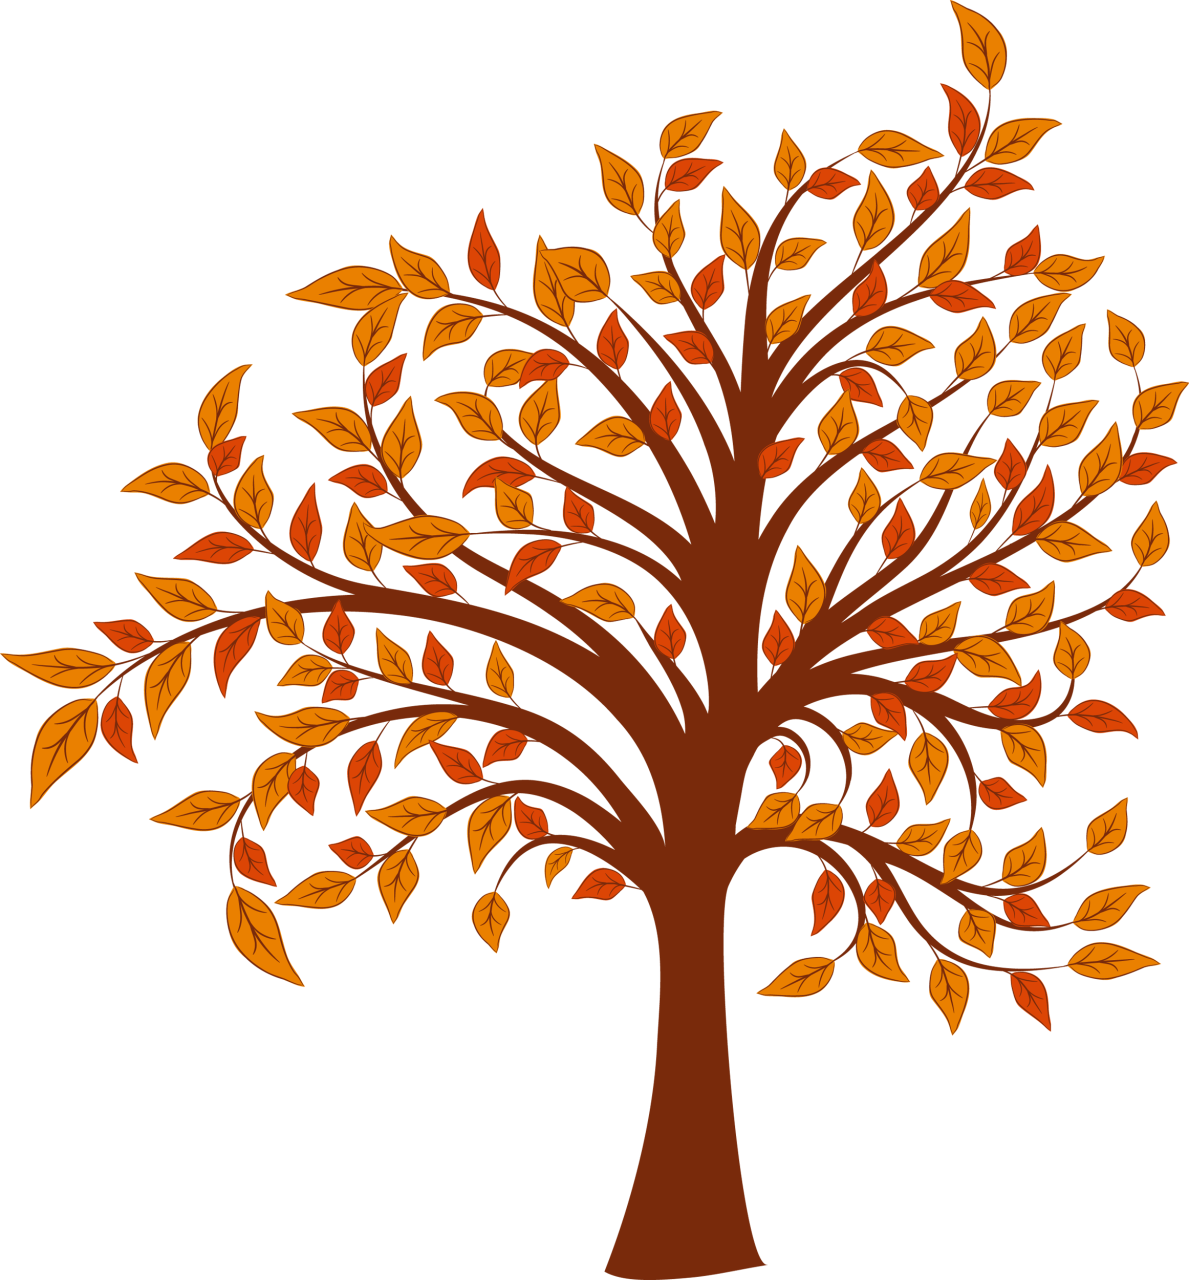 Tree clipart september. Of autumn fall pencil